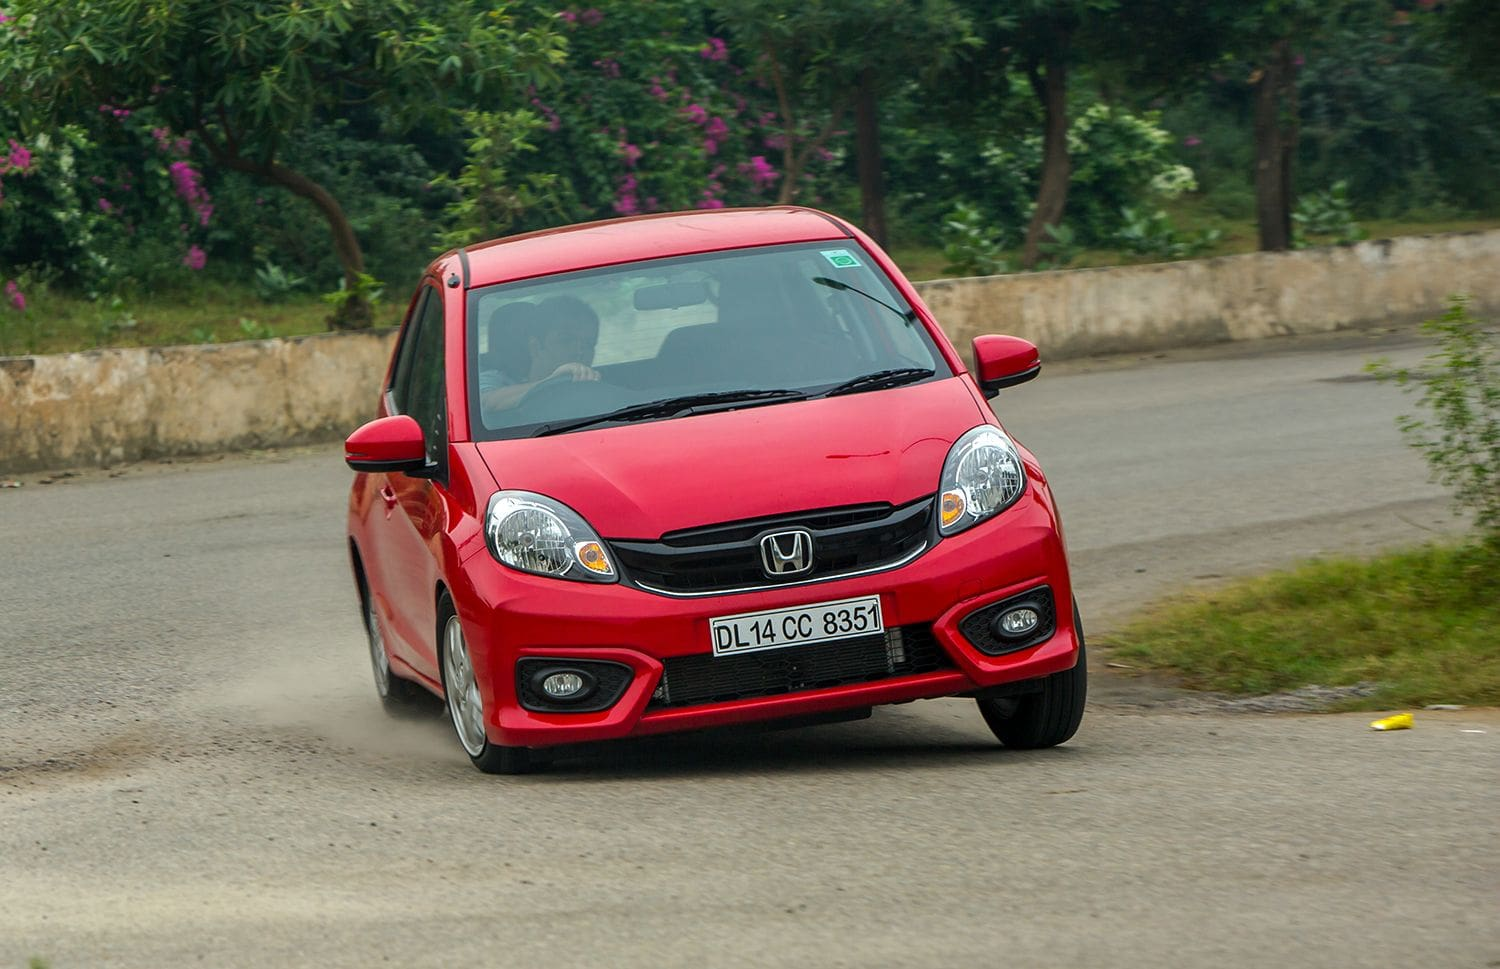 Honda Brio Facelift: First Drive Review